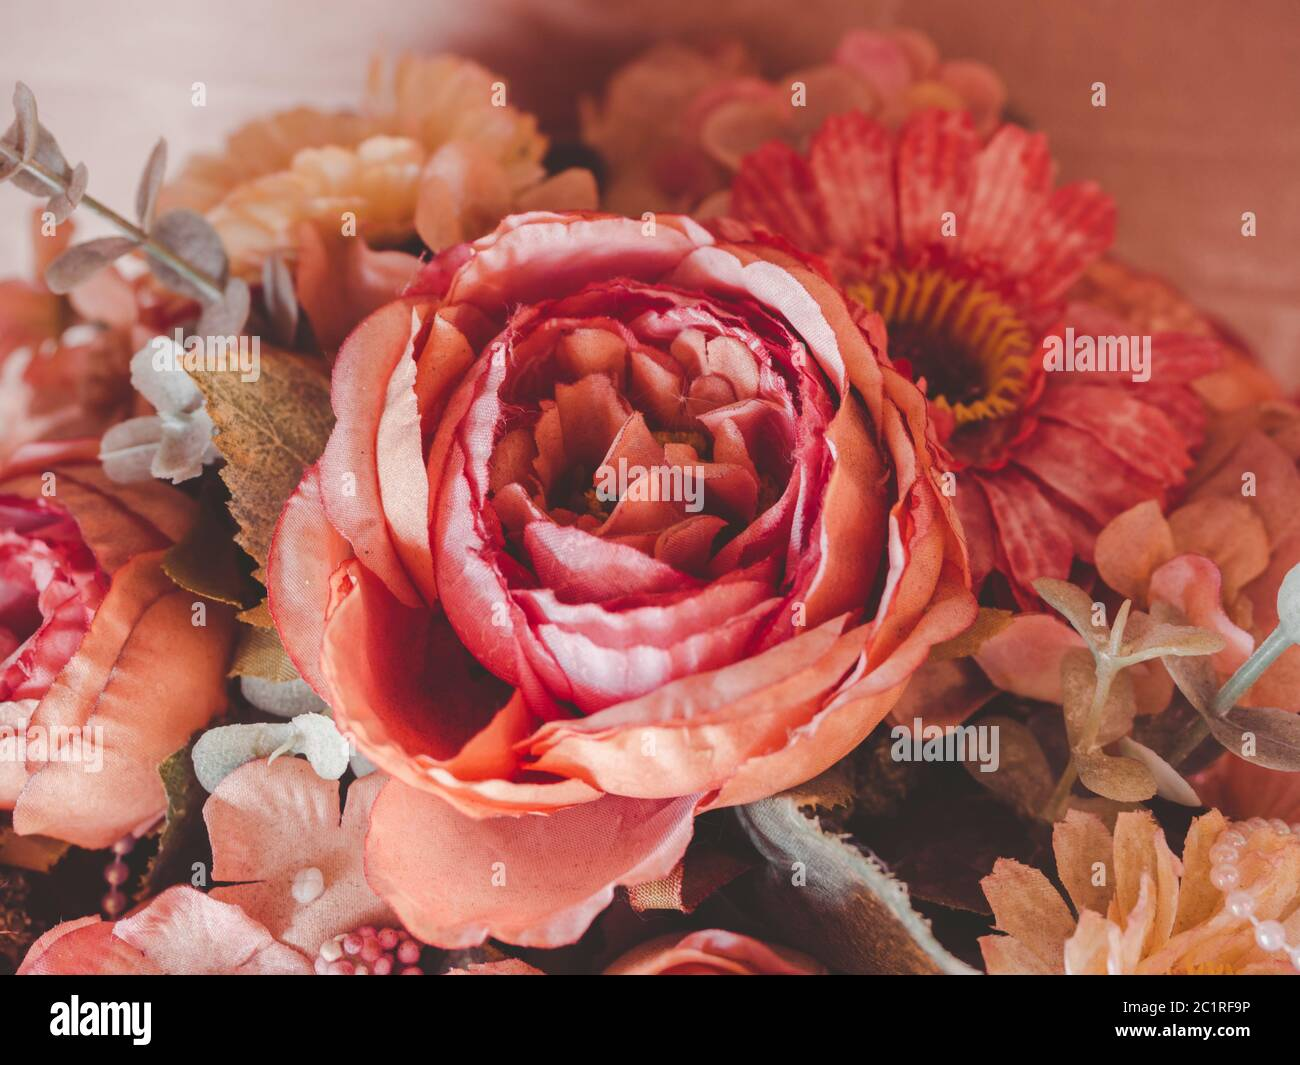 Beautiful Flower Bouquet Vintage Style Close Up Artificial Red Or Pink Roses Stock Photo Alamy